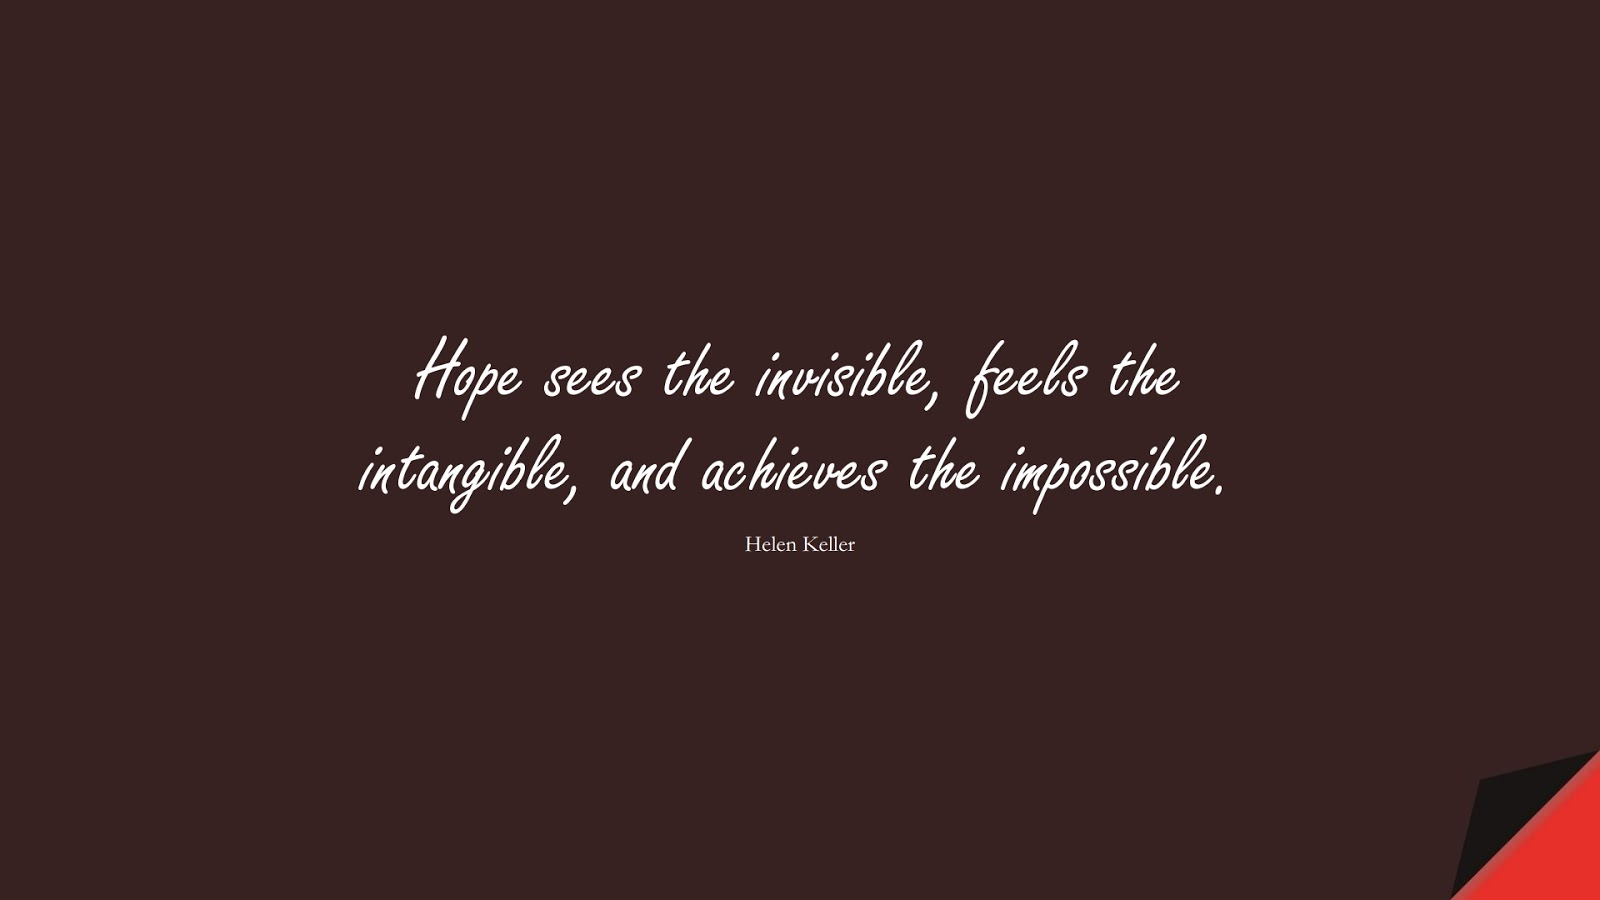 Hope sees the invisible, feels the intangible, and achieves the impossible. (Helen Keller);  #HopeQuotes